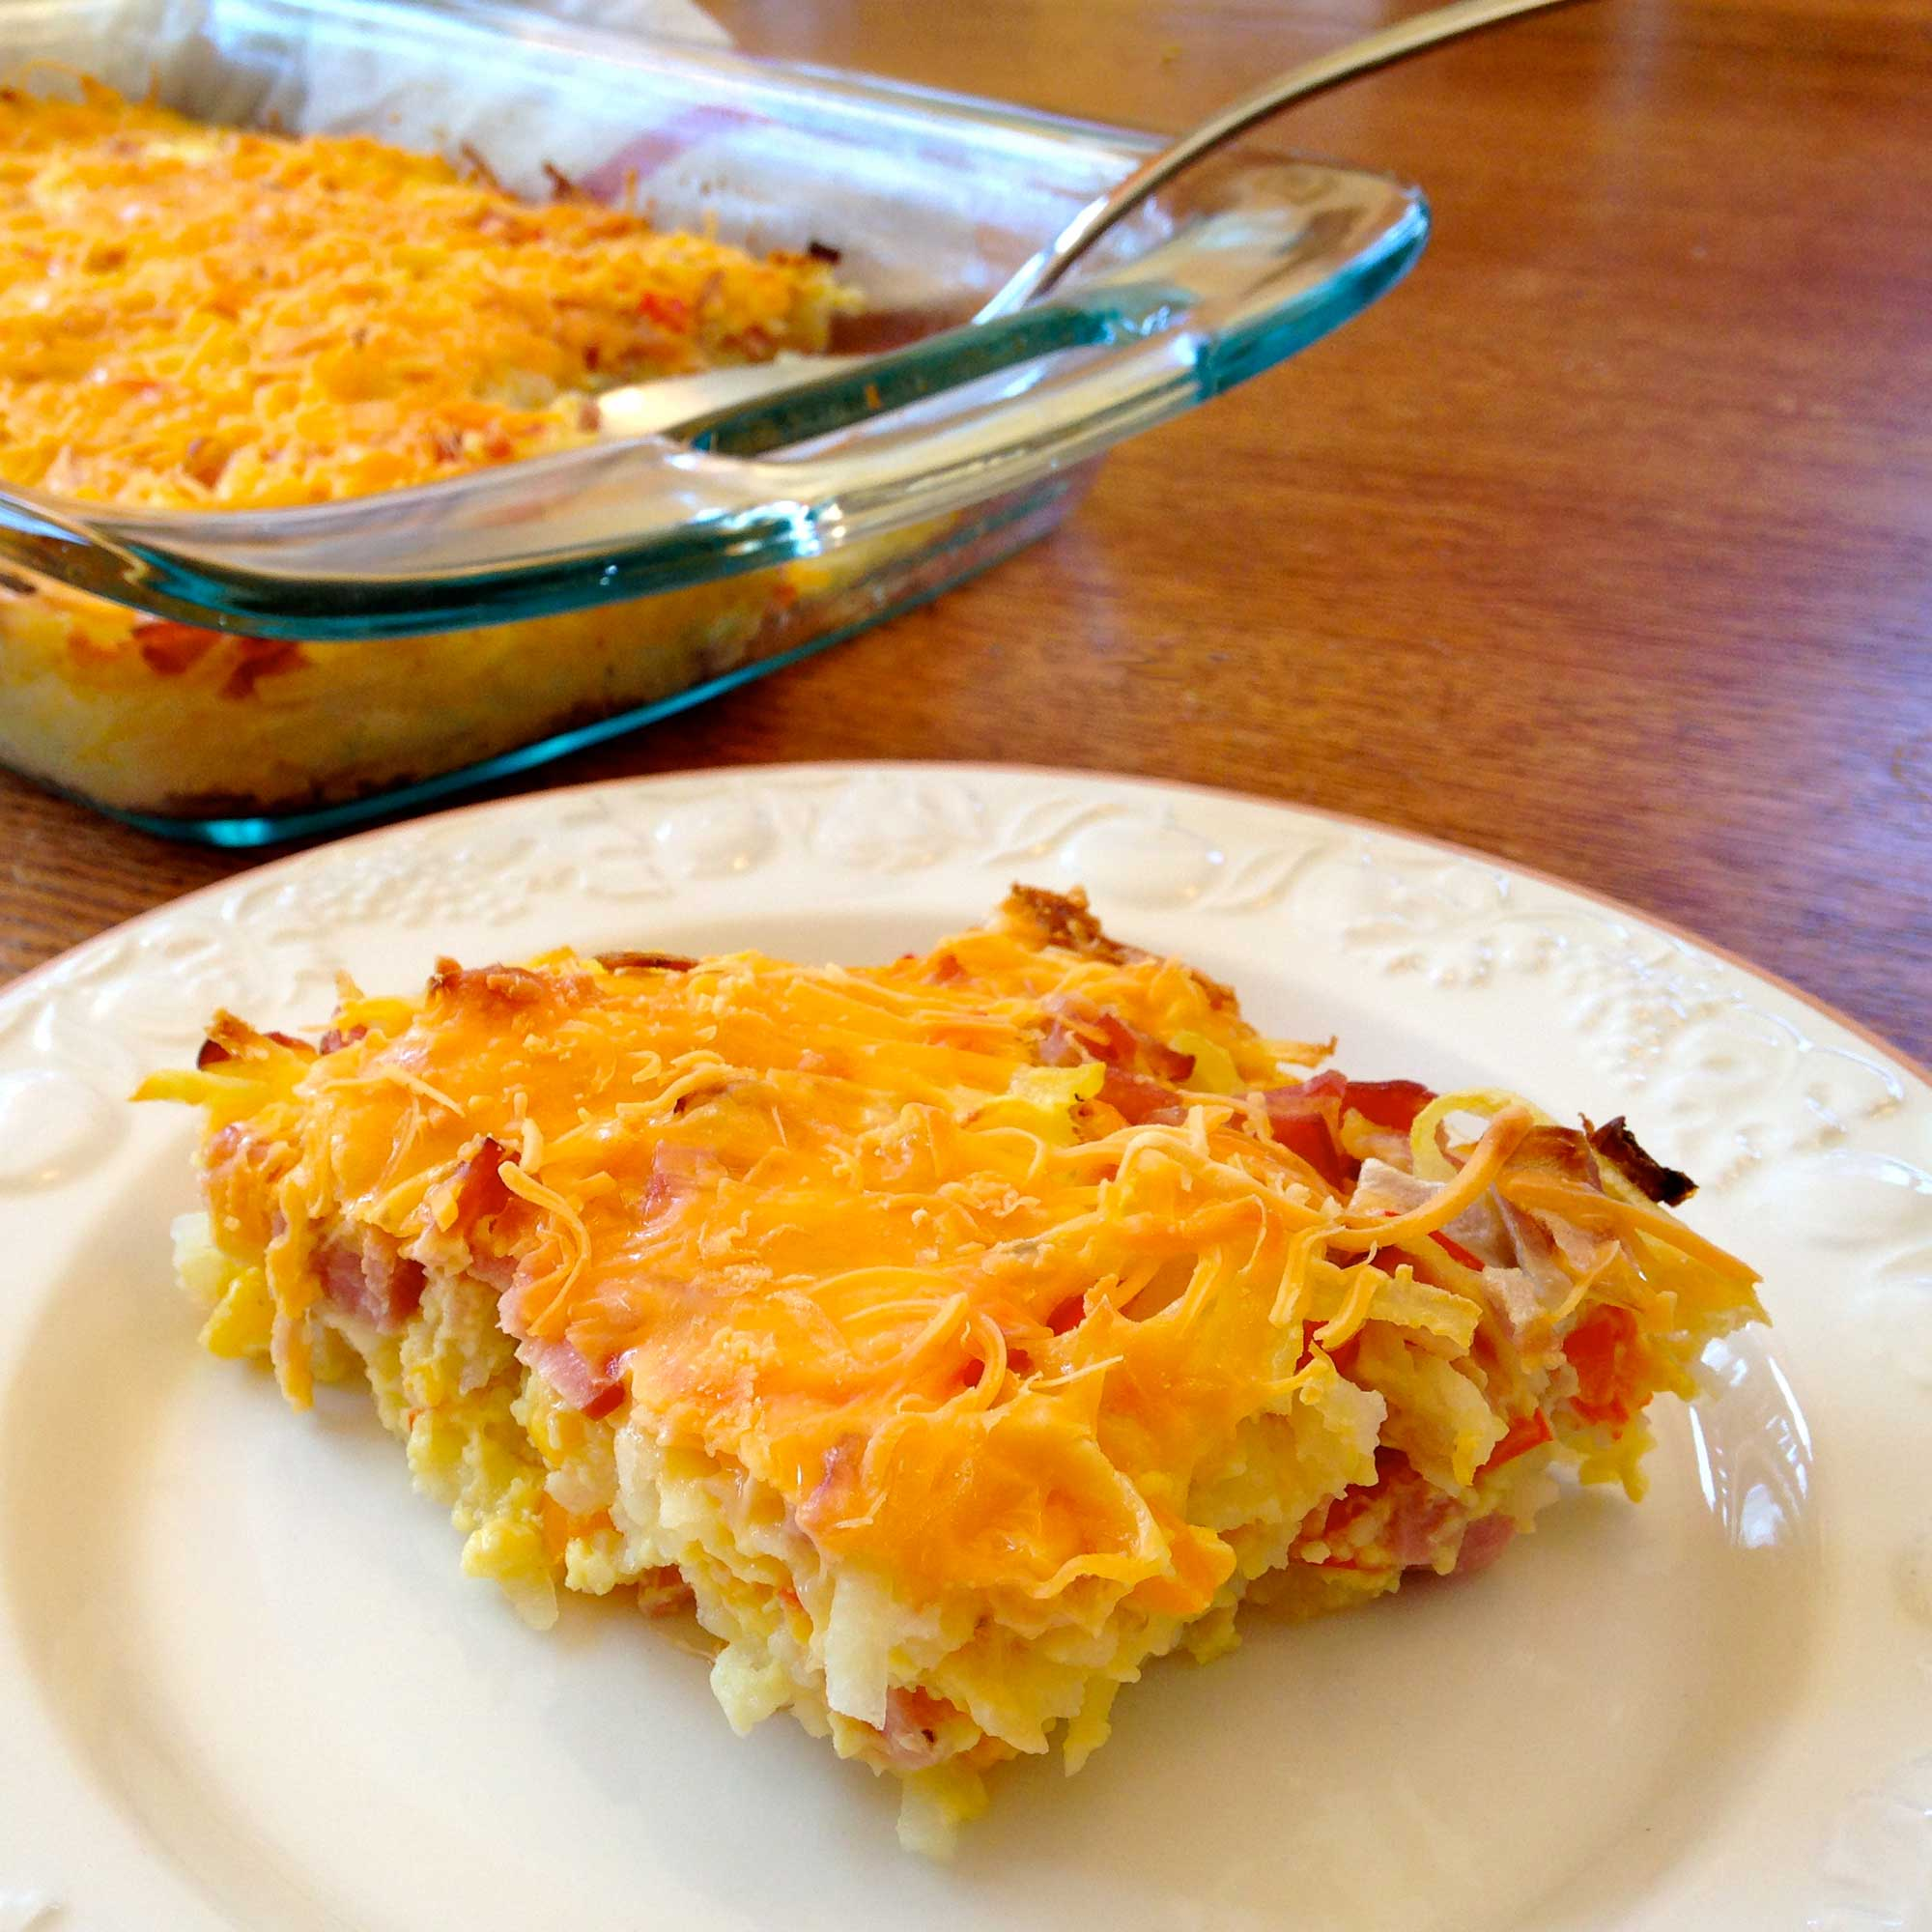 Healthy Egg, Cheese, & Hash Brown Casserole that's 100% Simply Filling on Weight Watchers | JenuineMom.com